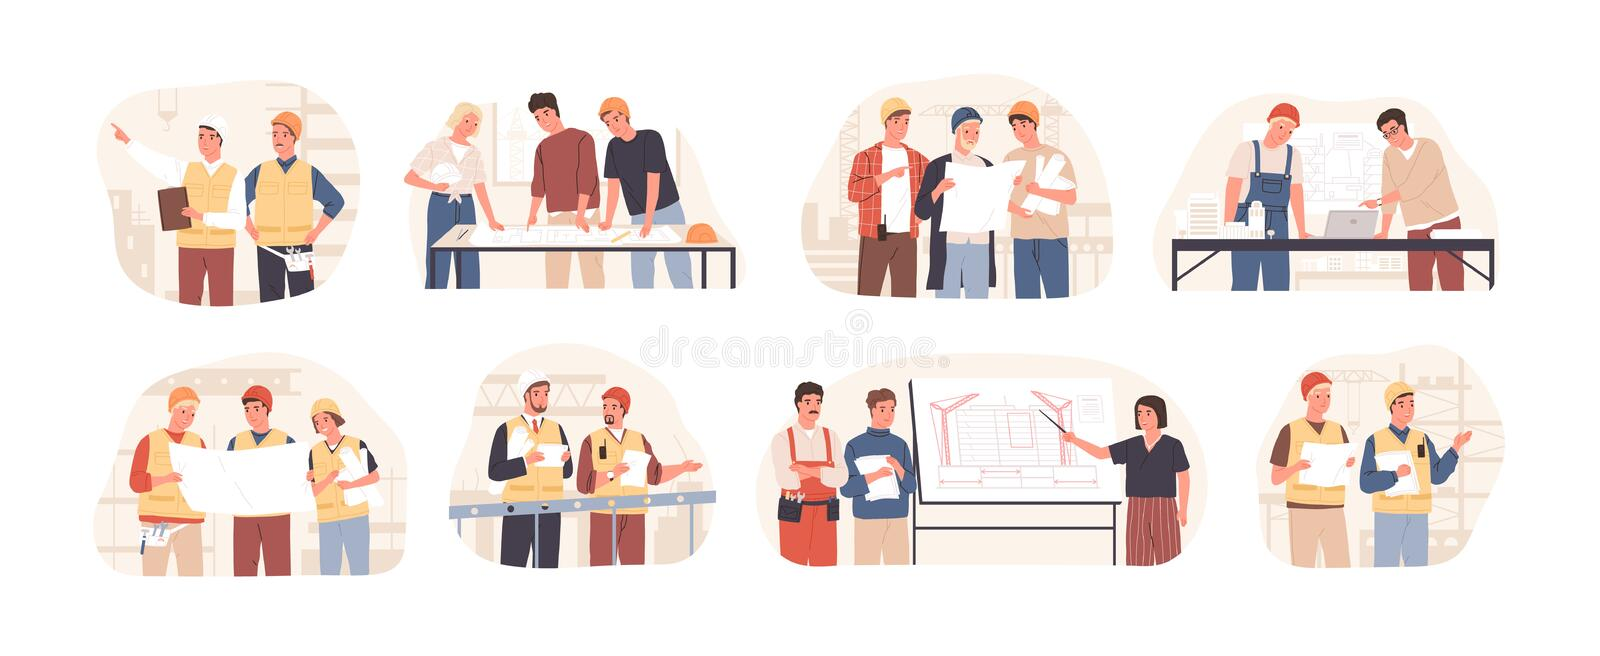 Builders and architects flat vector illustrations set. Architectural project planning, development and approval. Building industry concept. Professional stock illustration